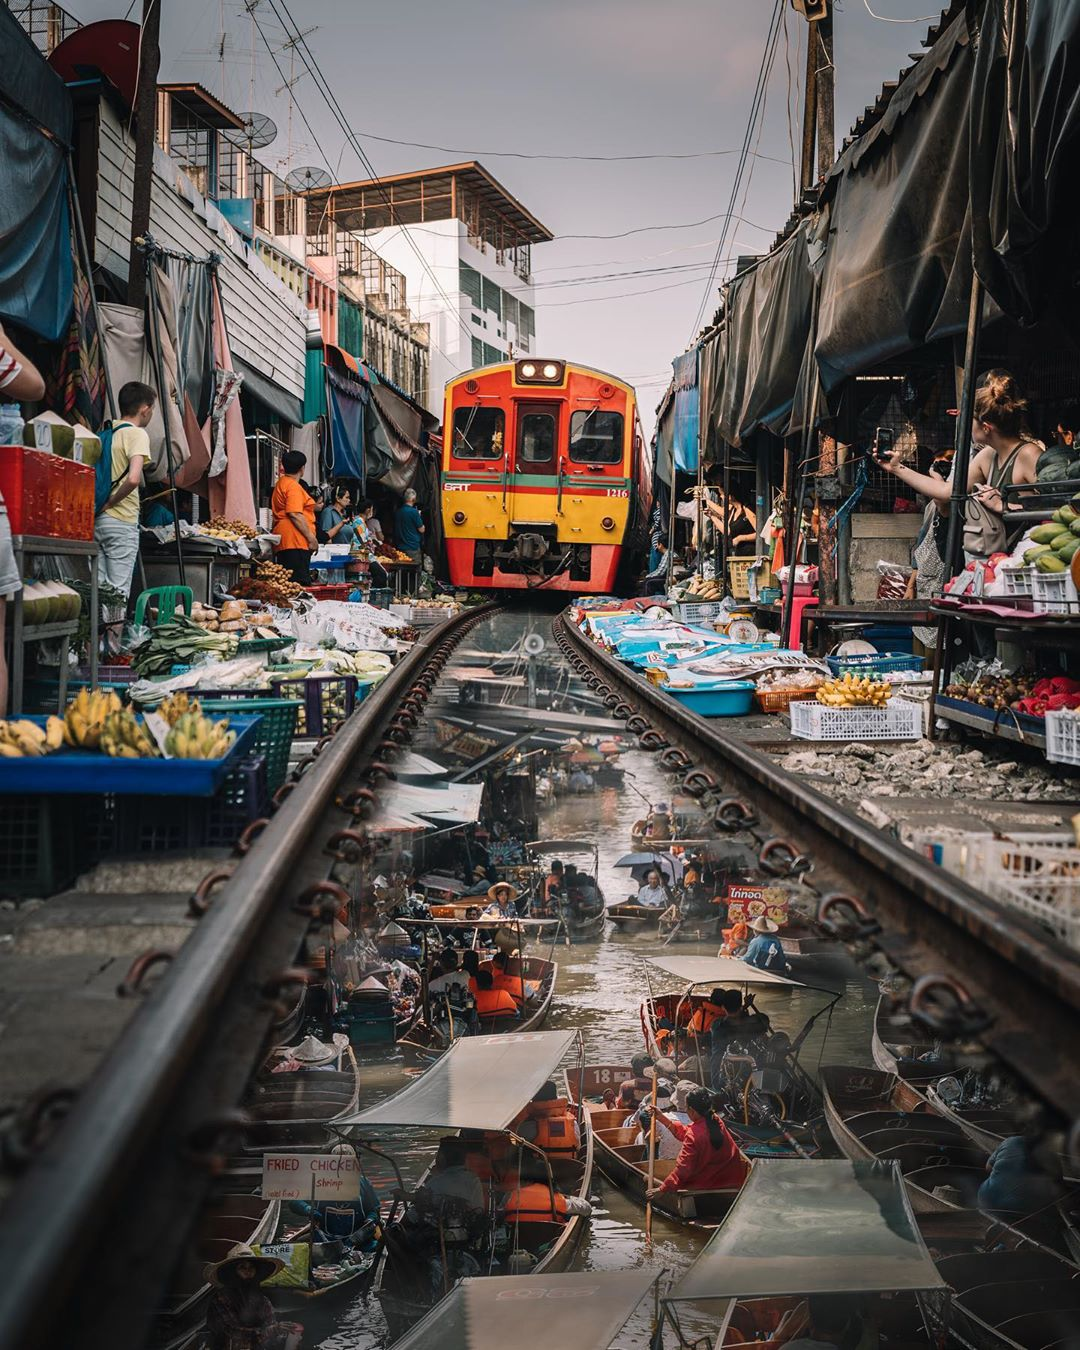 urban photography maeklong railway market